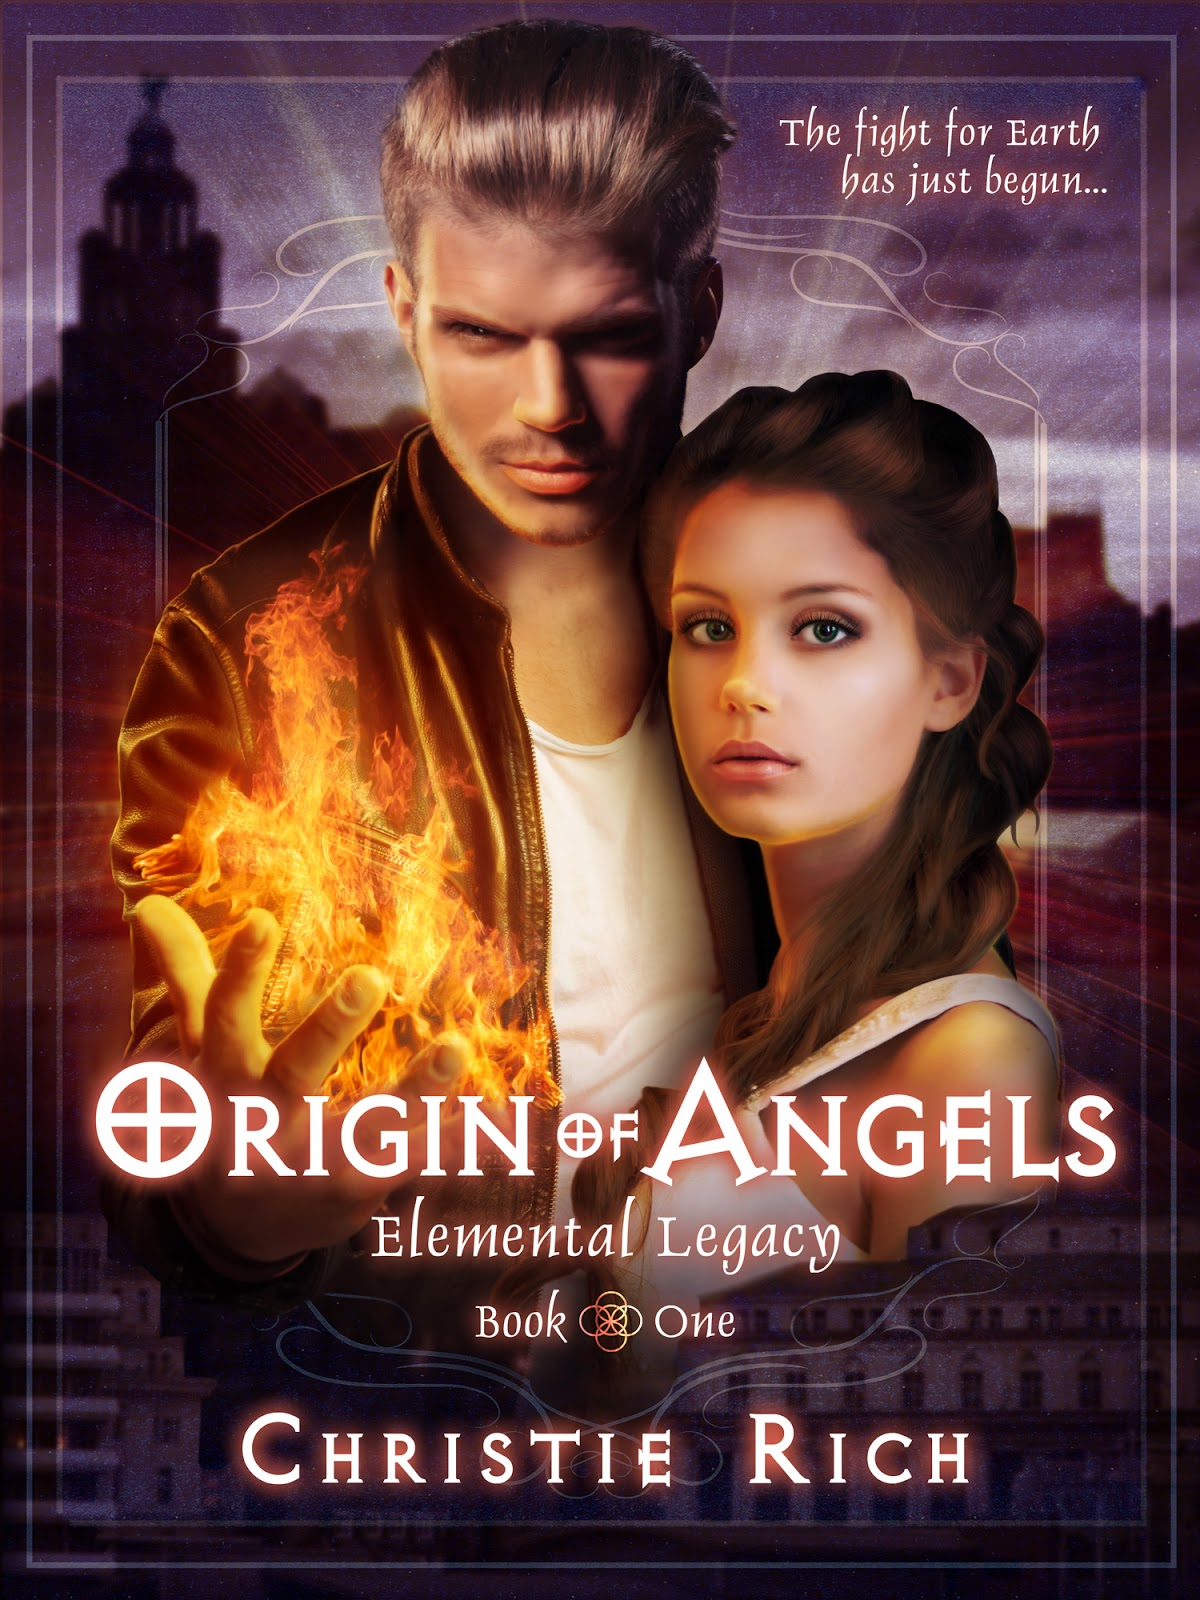 https://www.goodreads.com/book/show/23109529-origin-of-angels